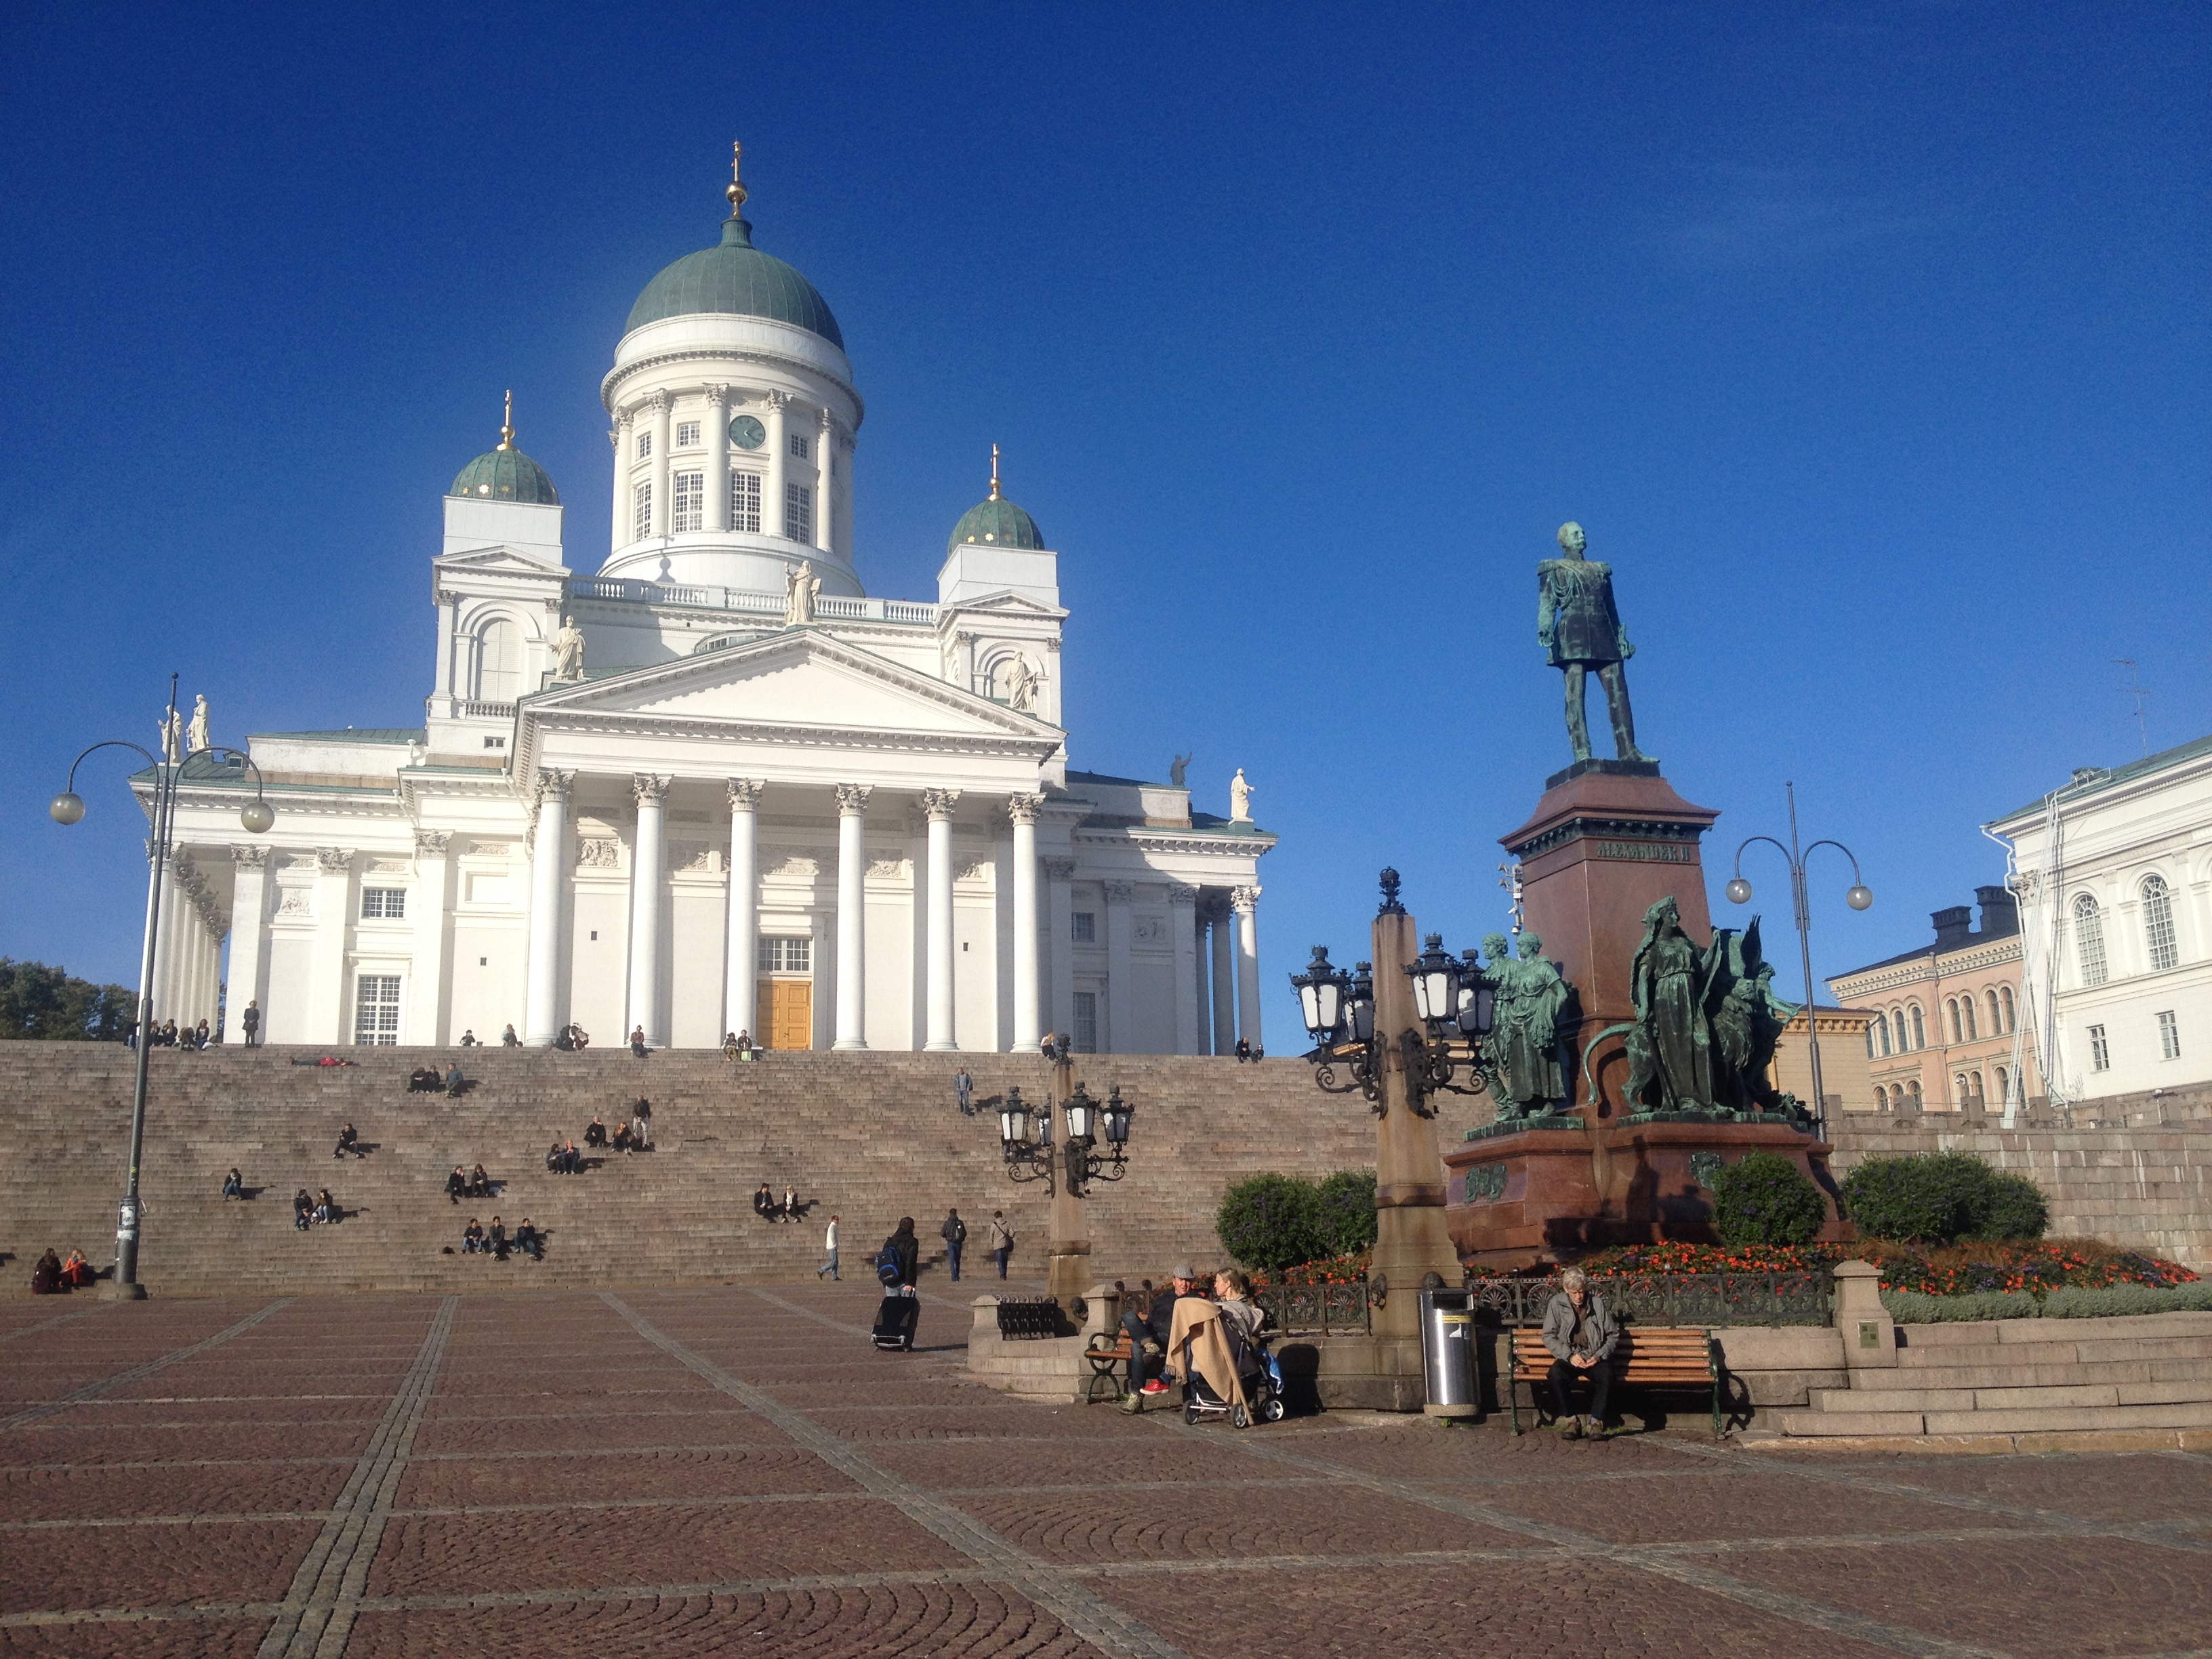 Senate Square with its surroundings on 28th September 2014 1.jpg